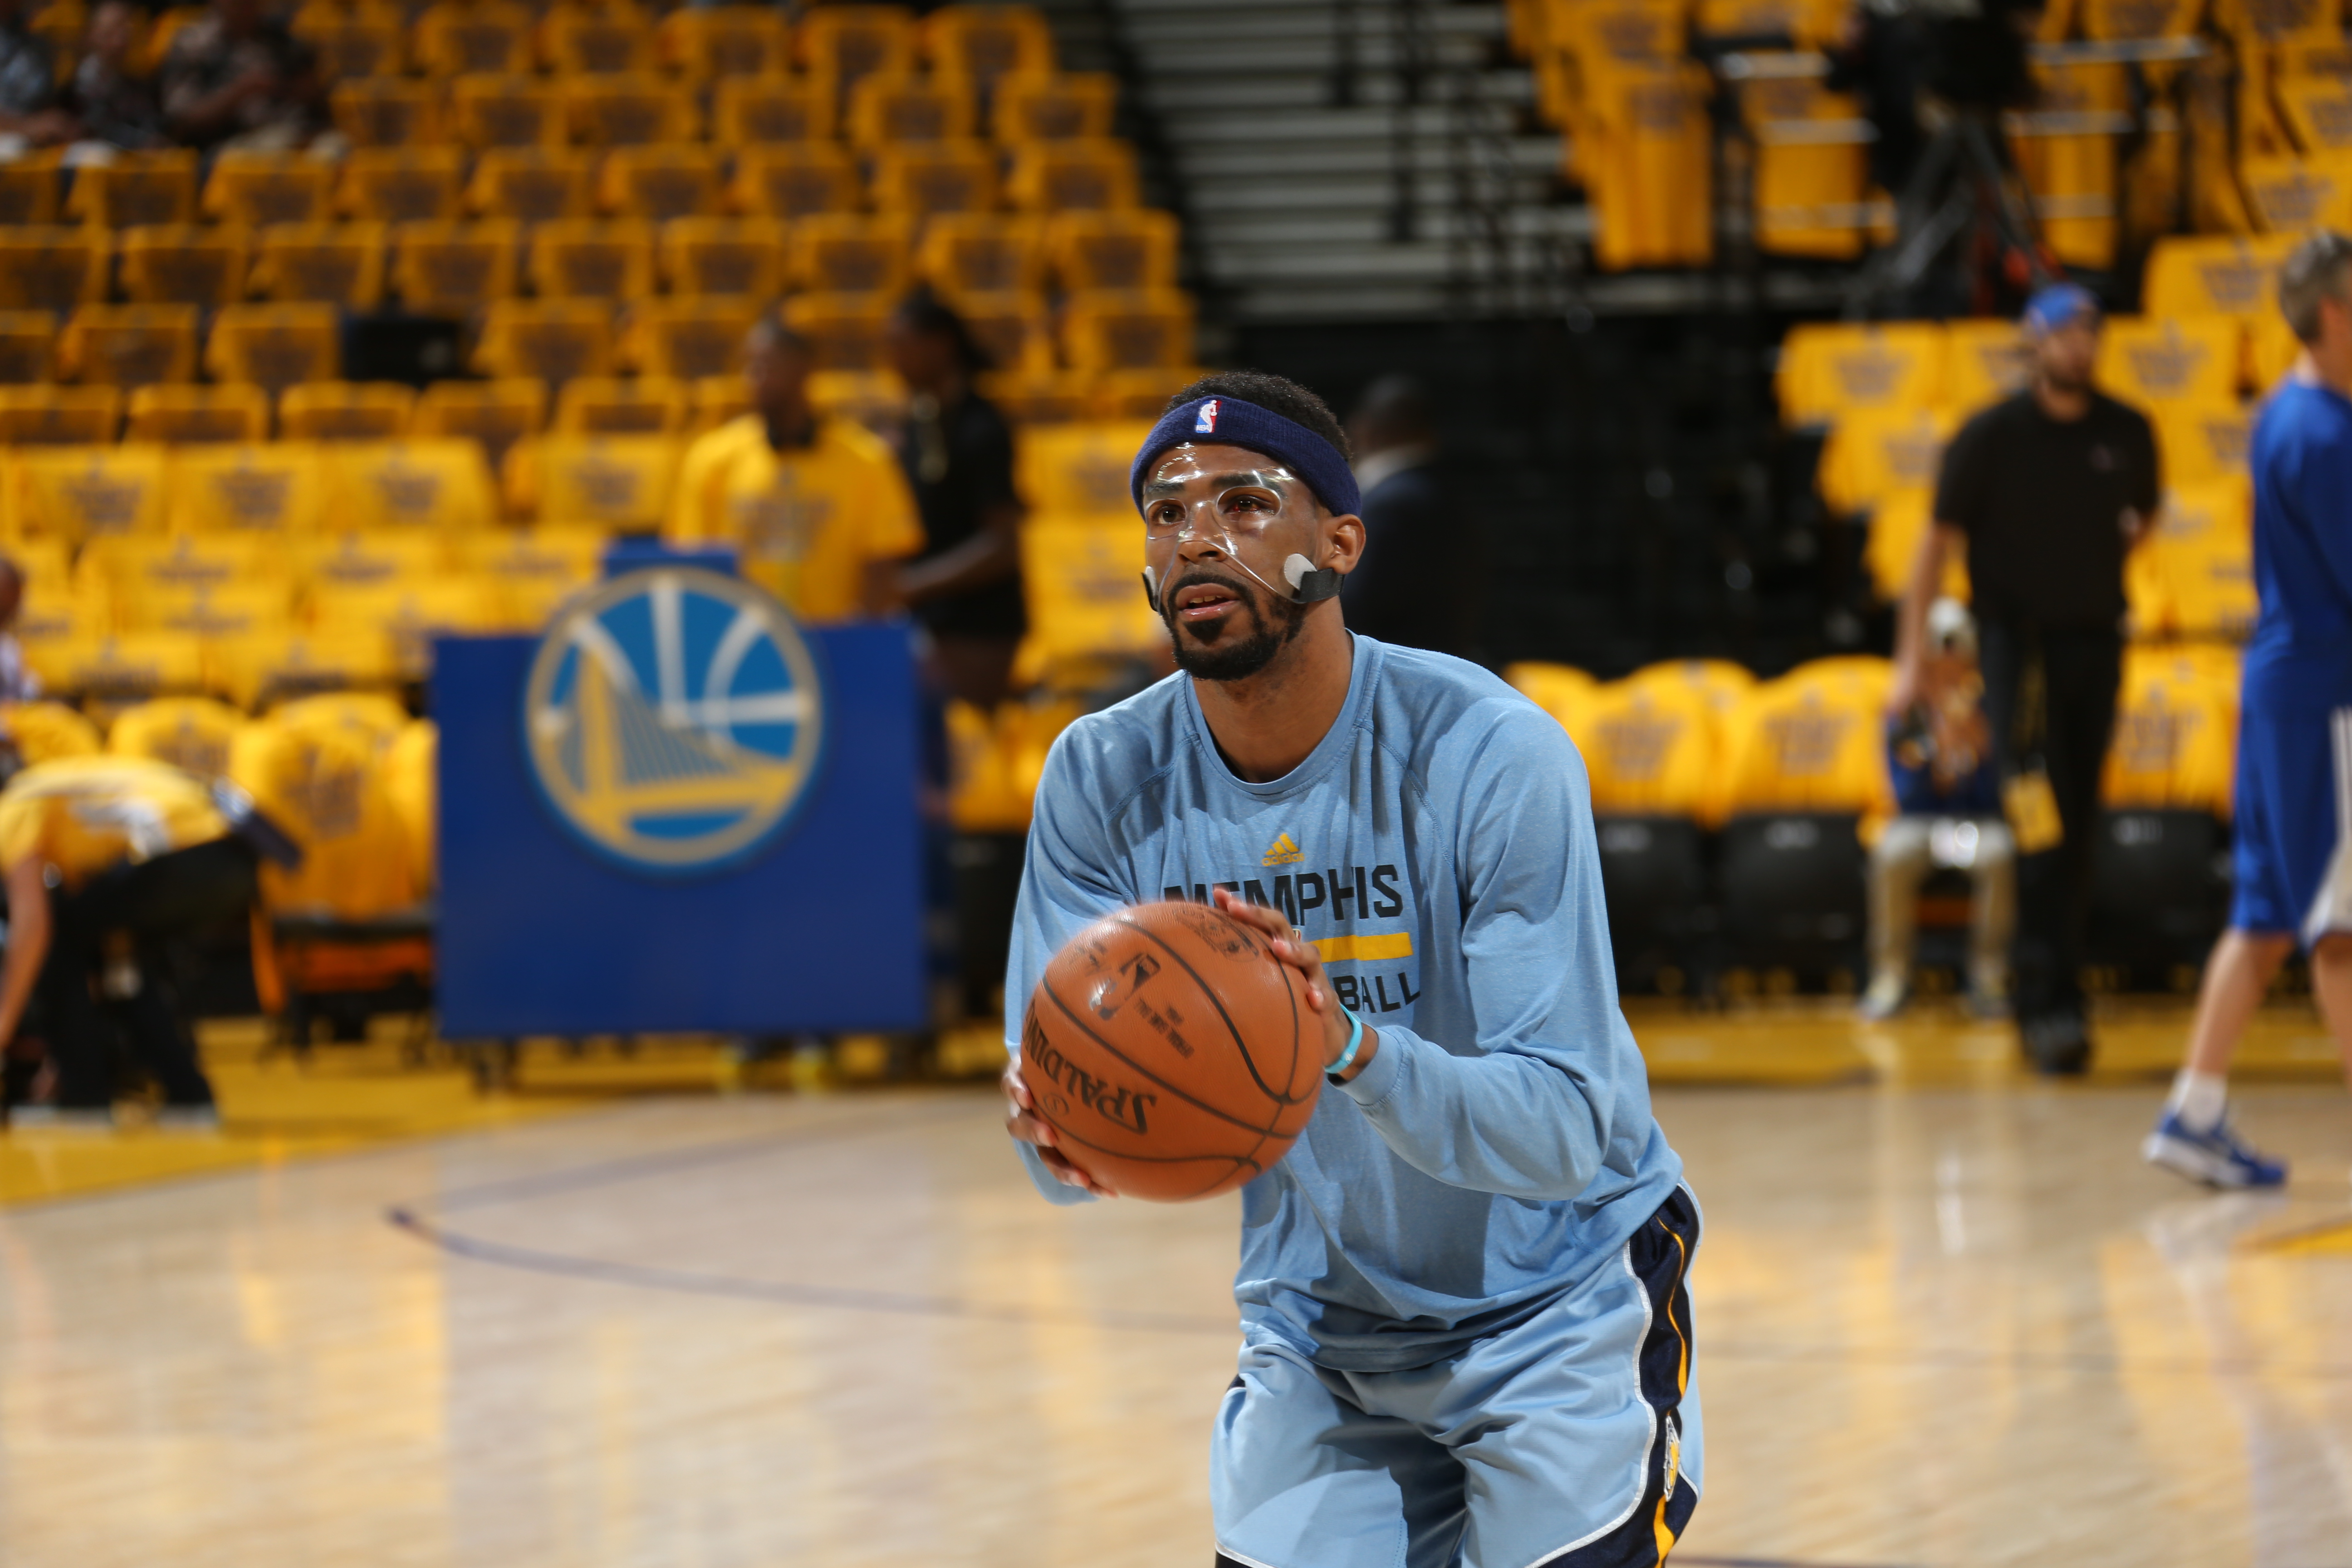 OAKLAND, CA - MAY 3:  Mike Conley #11 of the Memphis Grizzlies shoots the ball before the game against the Golden State Warriors during Game One of the Western Conference Semifinals during the NBA Playoffs on May 3, 2015 at Oracle Arena in Oakland, Califo